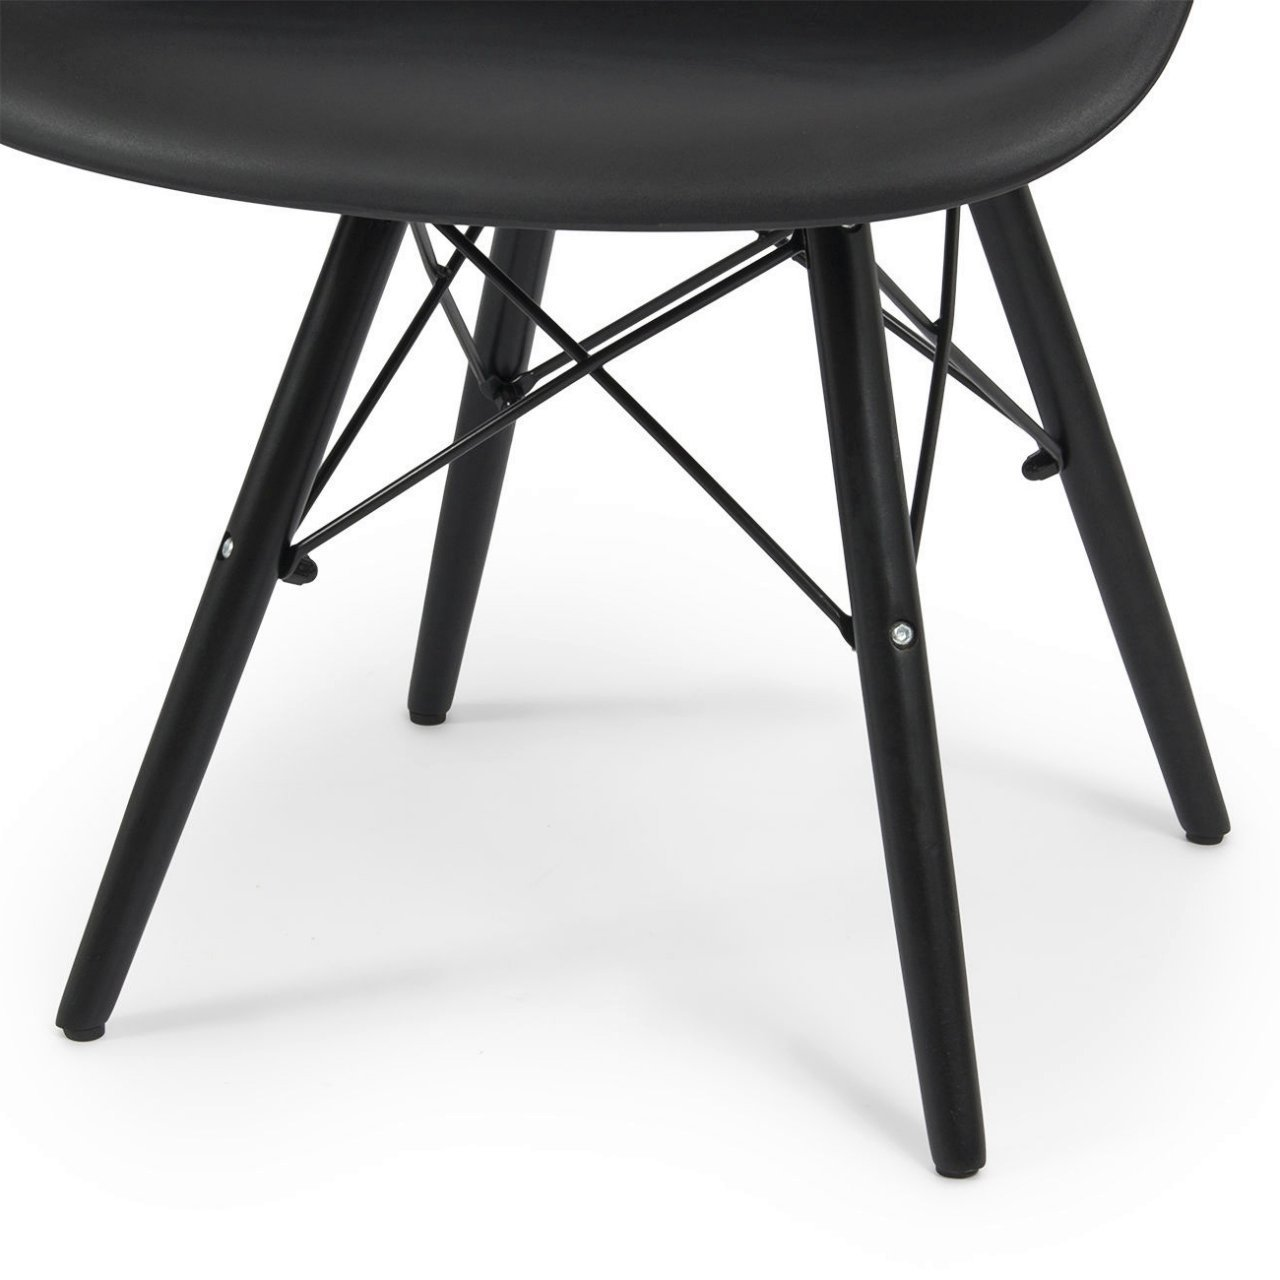 Modern Dining Chair Molded ABS Plastic Dowel Black Wooden Legs Posture Support Backrest Design Innovative Side Chair - Set of 2 Black #1442 by Koonlert@Shop (Image #5)